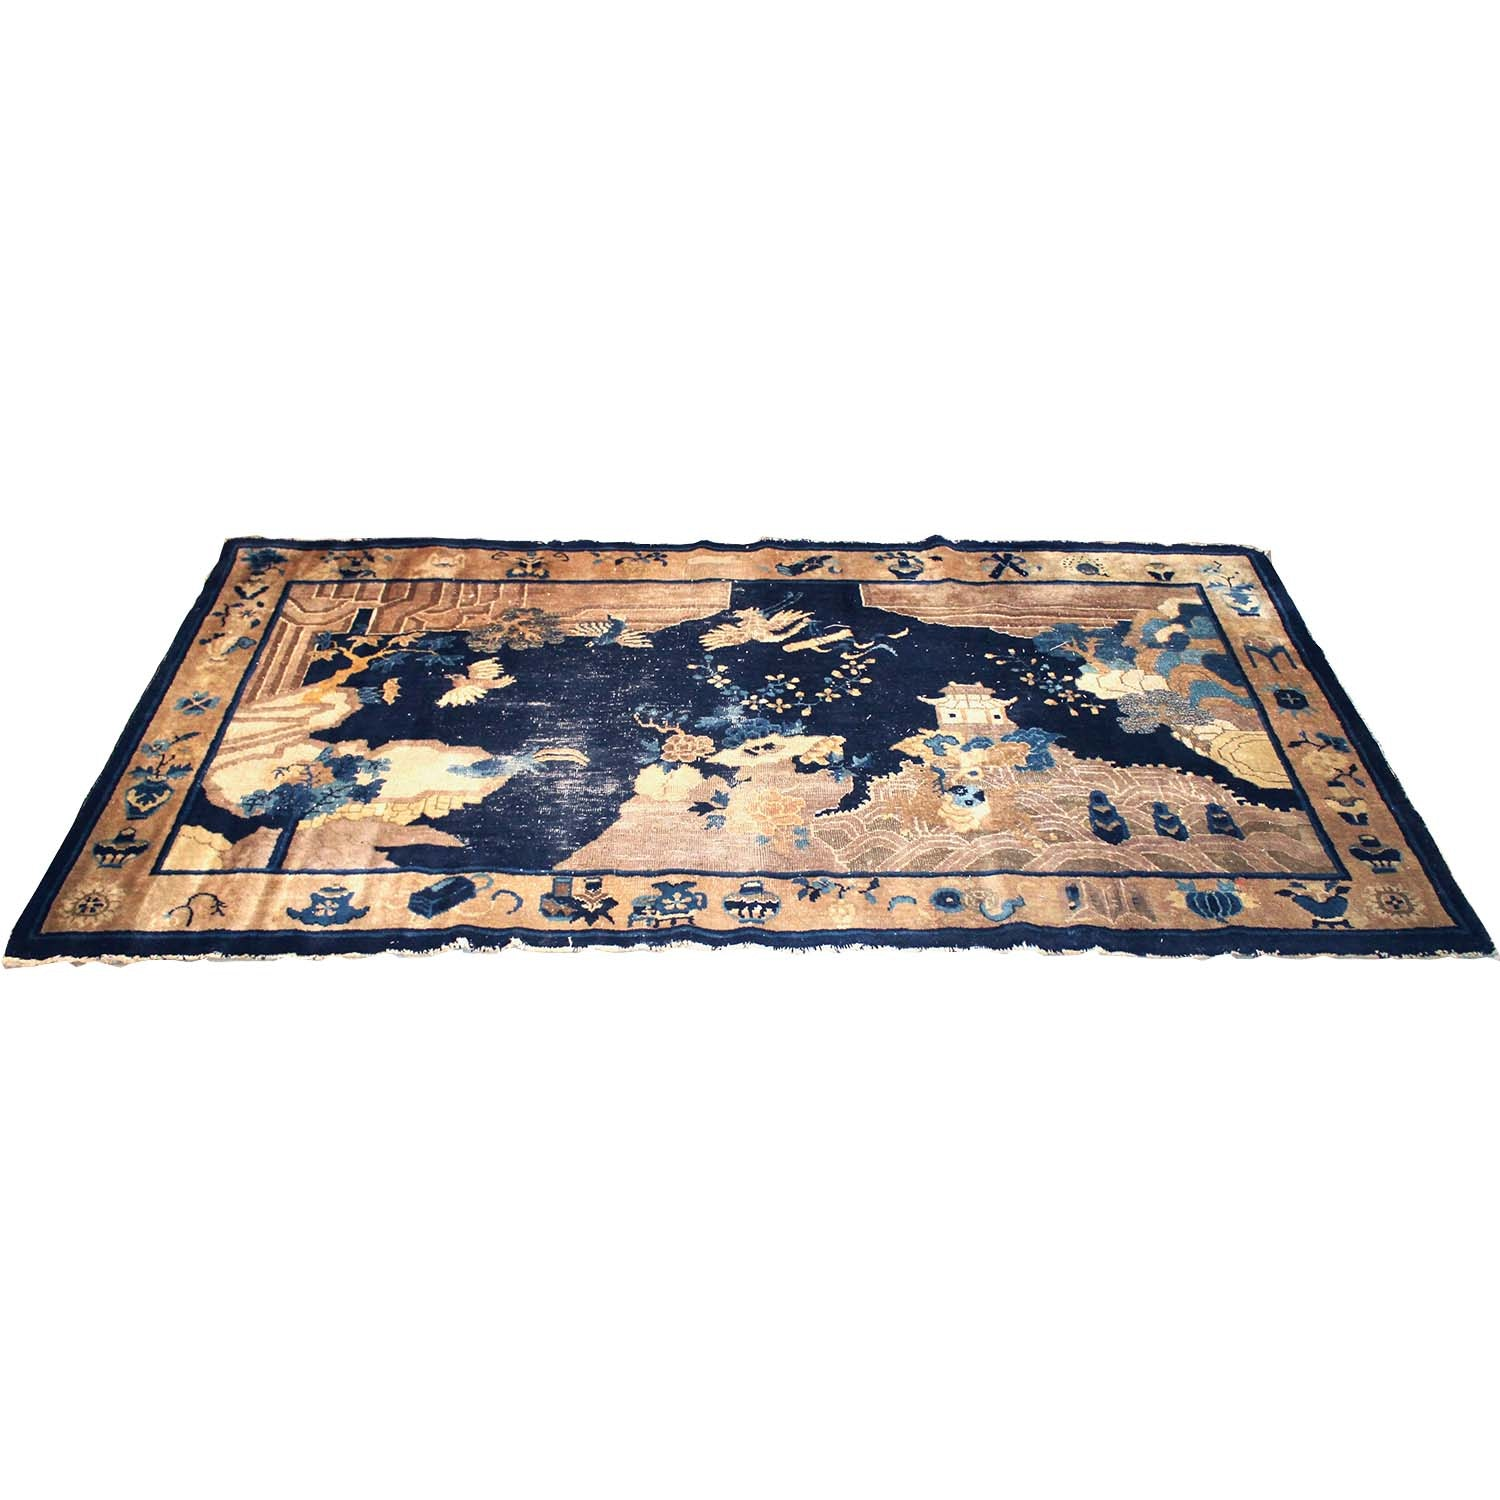 Semi-Antique Hand-Knotted Chinese Peking Pictorial Rug